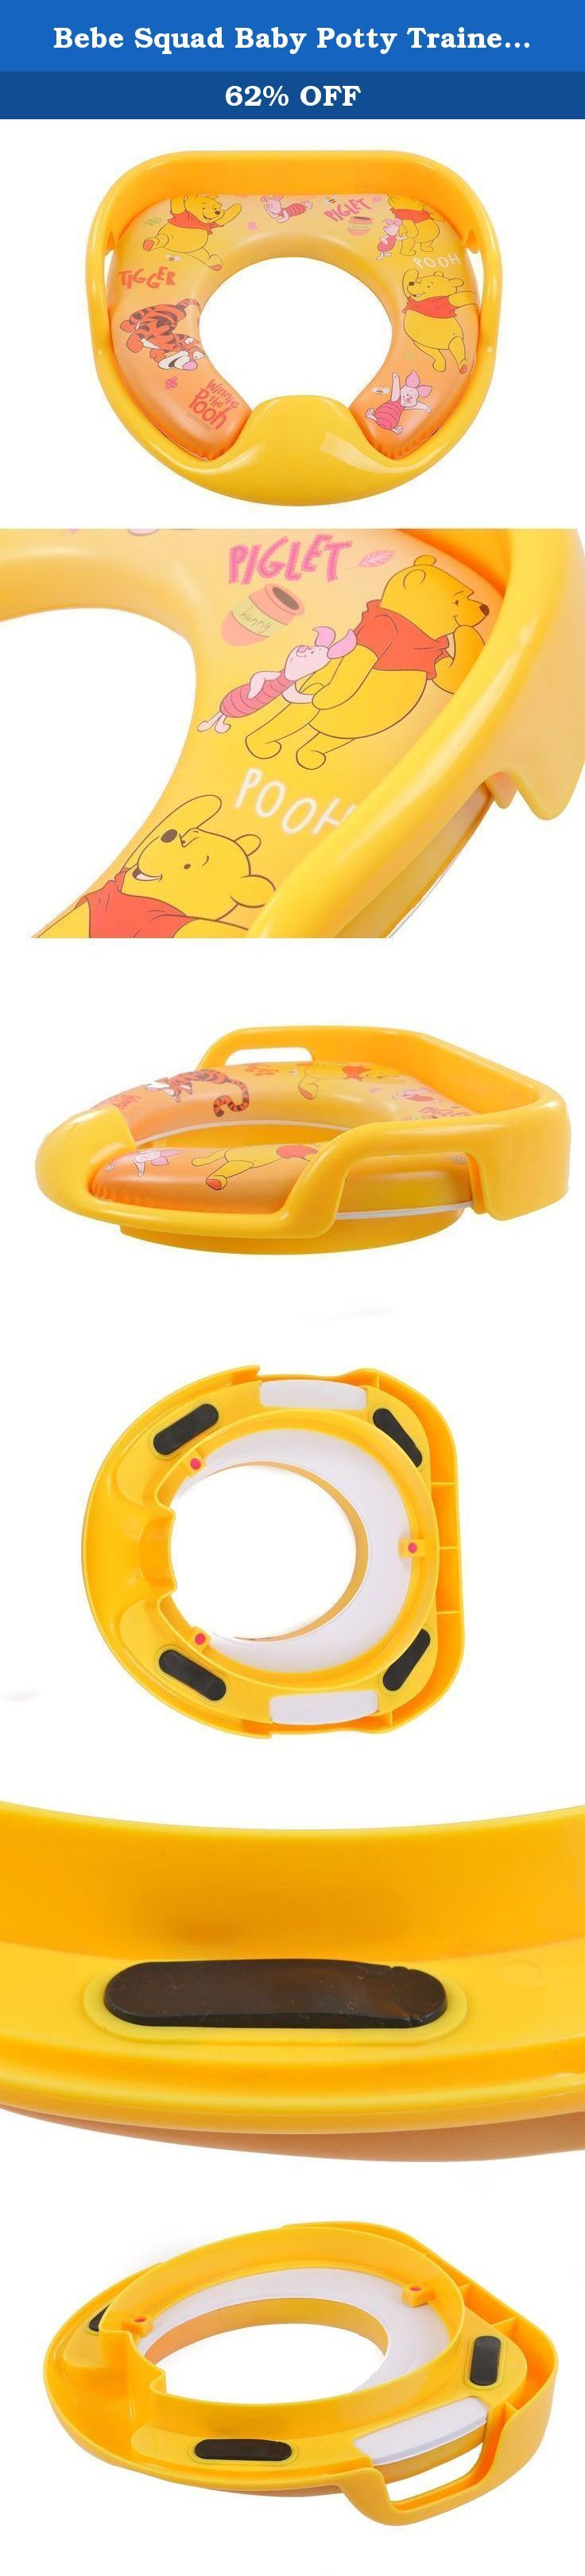 Bebe Squad Baby Potty Trainer Seat - The Soft Seat Ideal for Potty Training, Featuring the Best Baby Toilet Seat Design (Yellow). BEBE SQUAD Baby Potty Trainer Seat With the BEBE SQUAD Potty Trainer Seat your little ones will learn how to use the toilet in style, while having a whole lot of fun in the process. BEBE SQUAD's Potty Trainer amazing benefits! The design features multiple color options and cartoon character graphics that you can select from to keep your babies entertained. The...